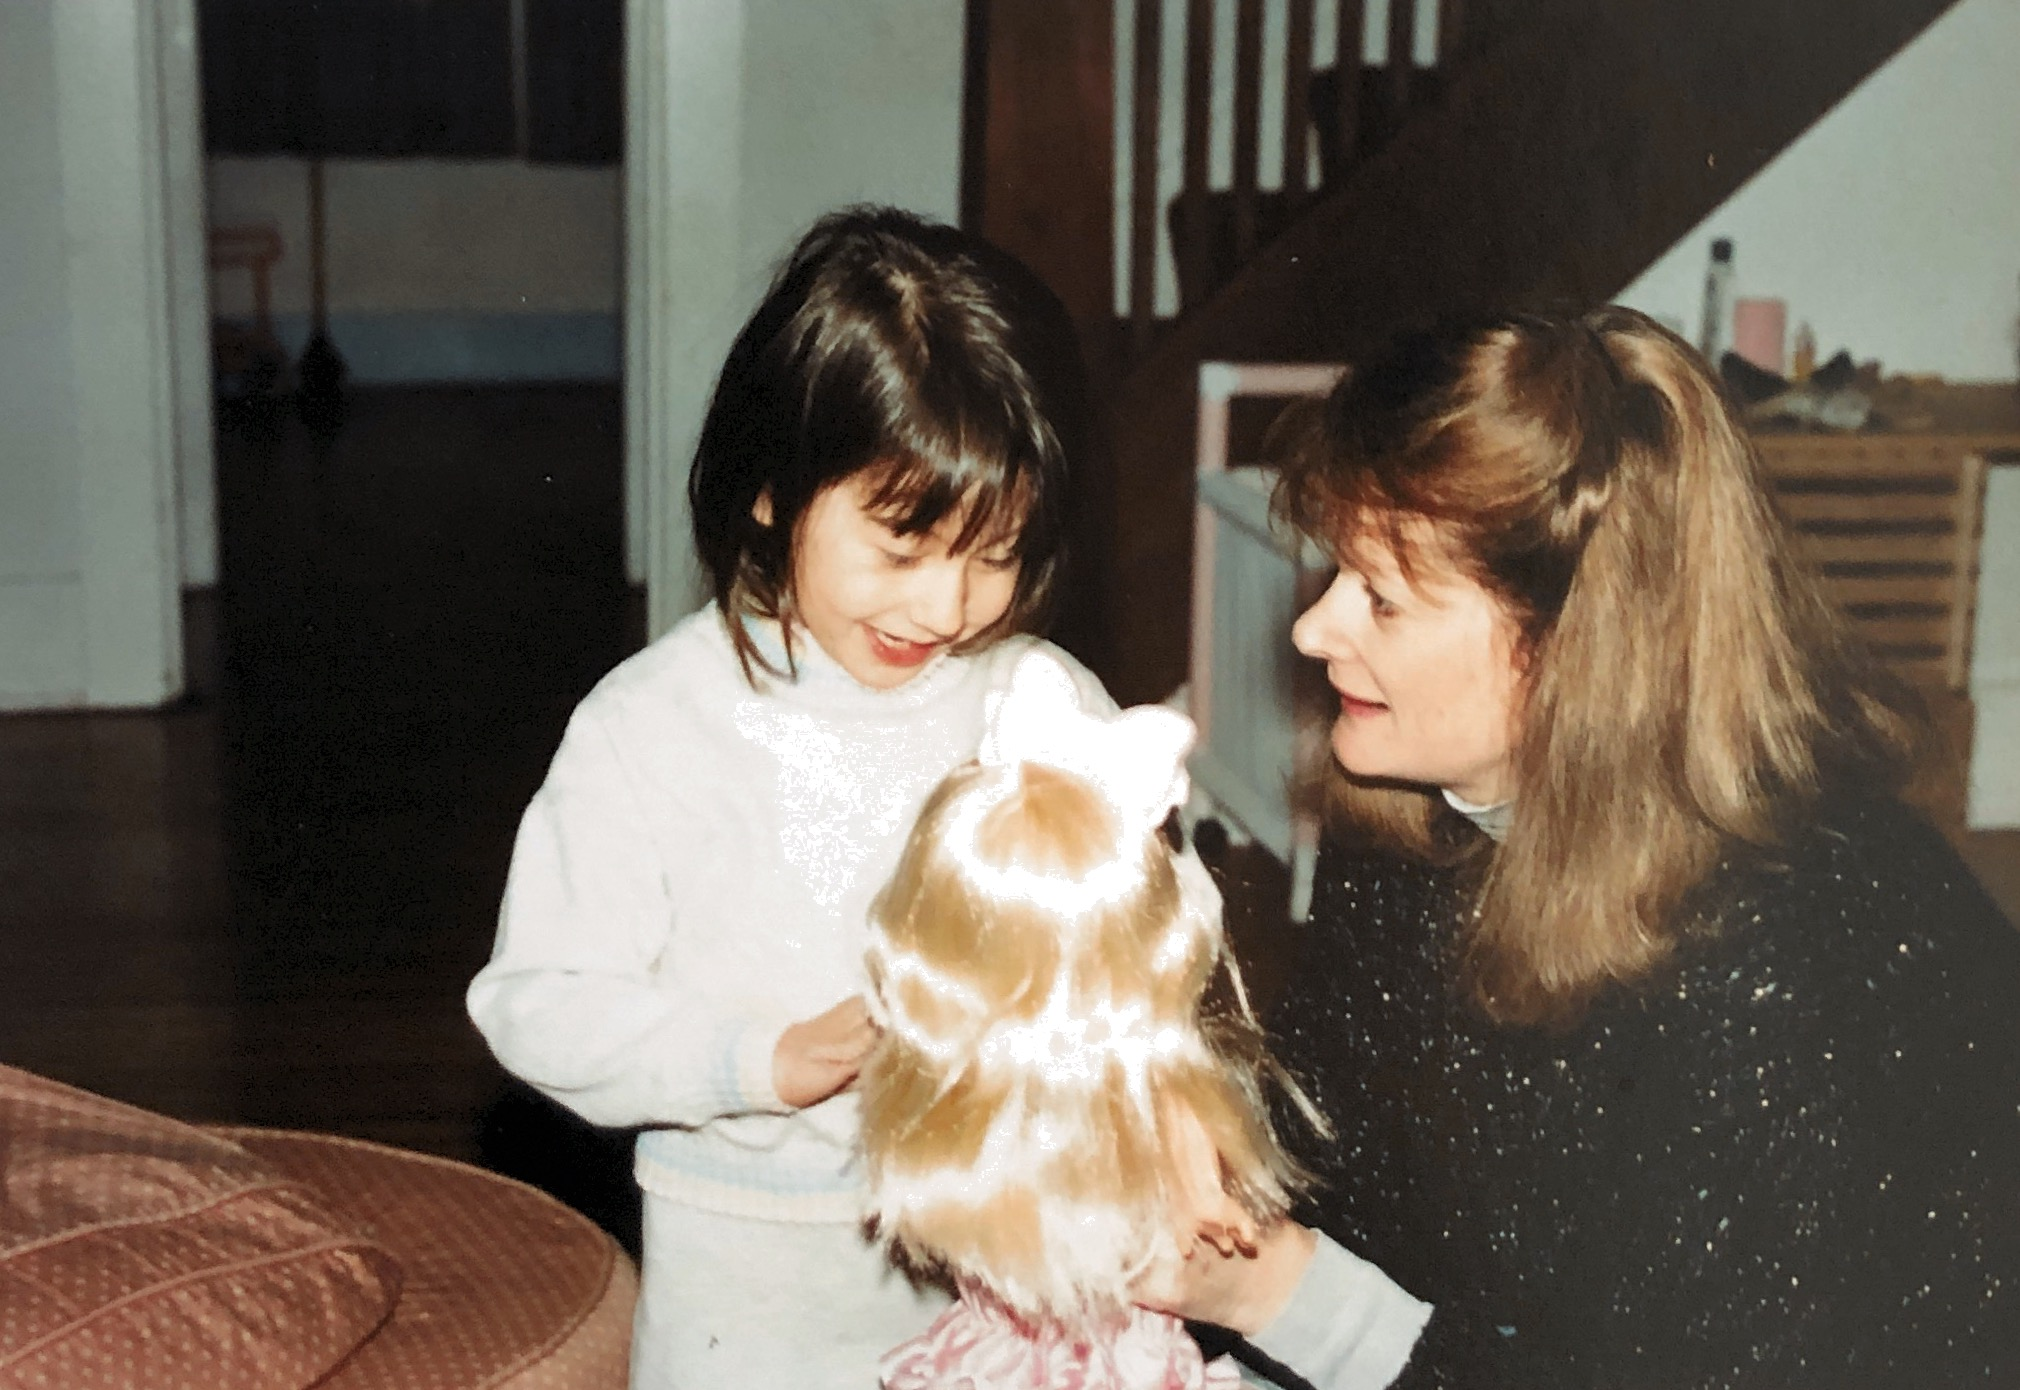 With my Nonnie proudly showing off my Sparkly Princess Doll - Christmas 1989.